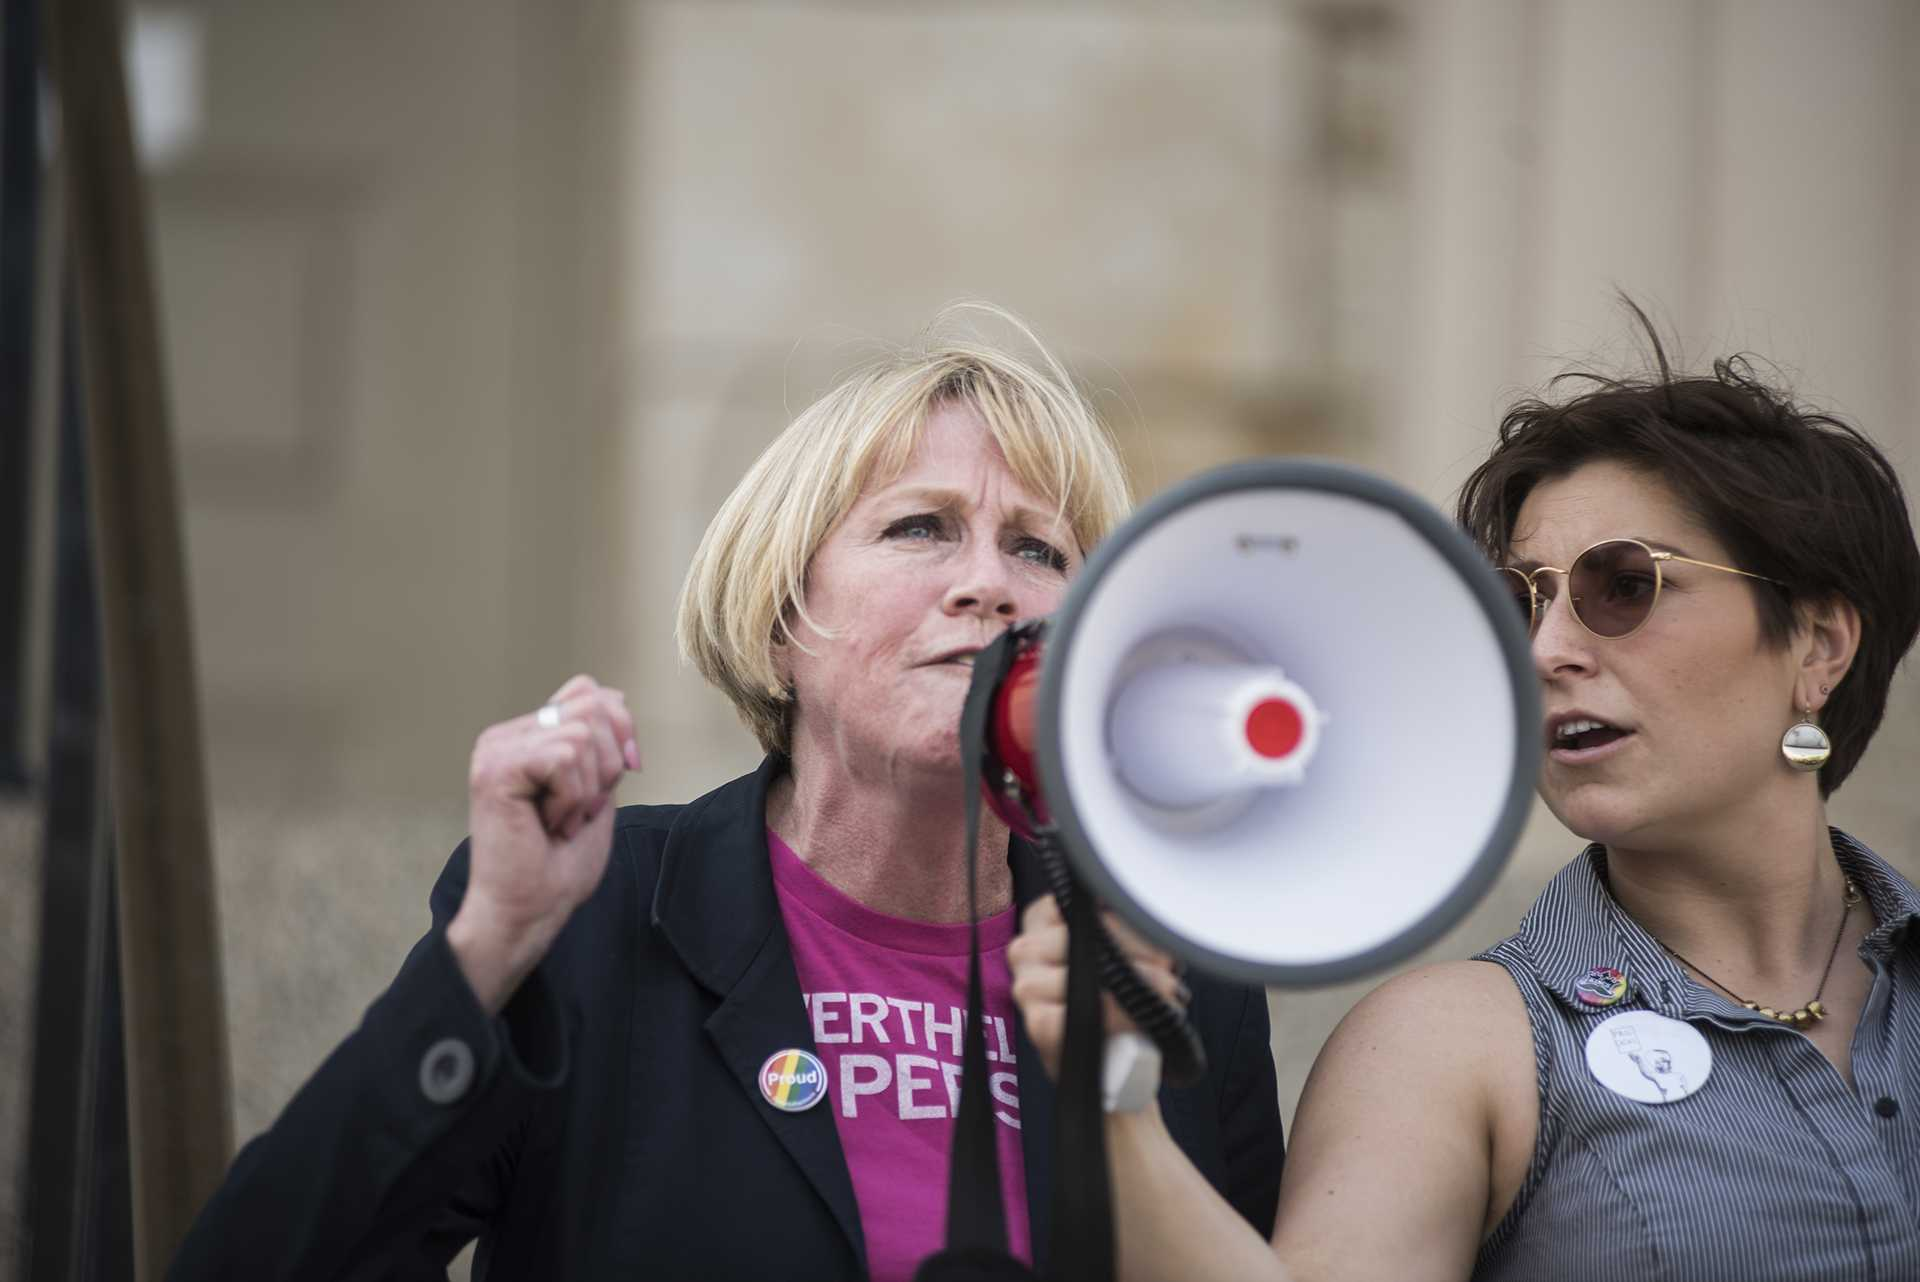 Gubernatorial candidate Cathy Glasson speaks to a crowd on the Pentacrest in Iowa City on Saturday, May 5. Glasson is running on a platform that focuses on issues relating to universal healthcare, gun regulations, and equal pay. (Ben Allan Smith/The Daily Iowan)